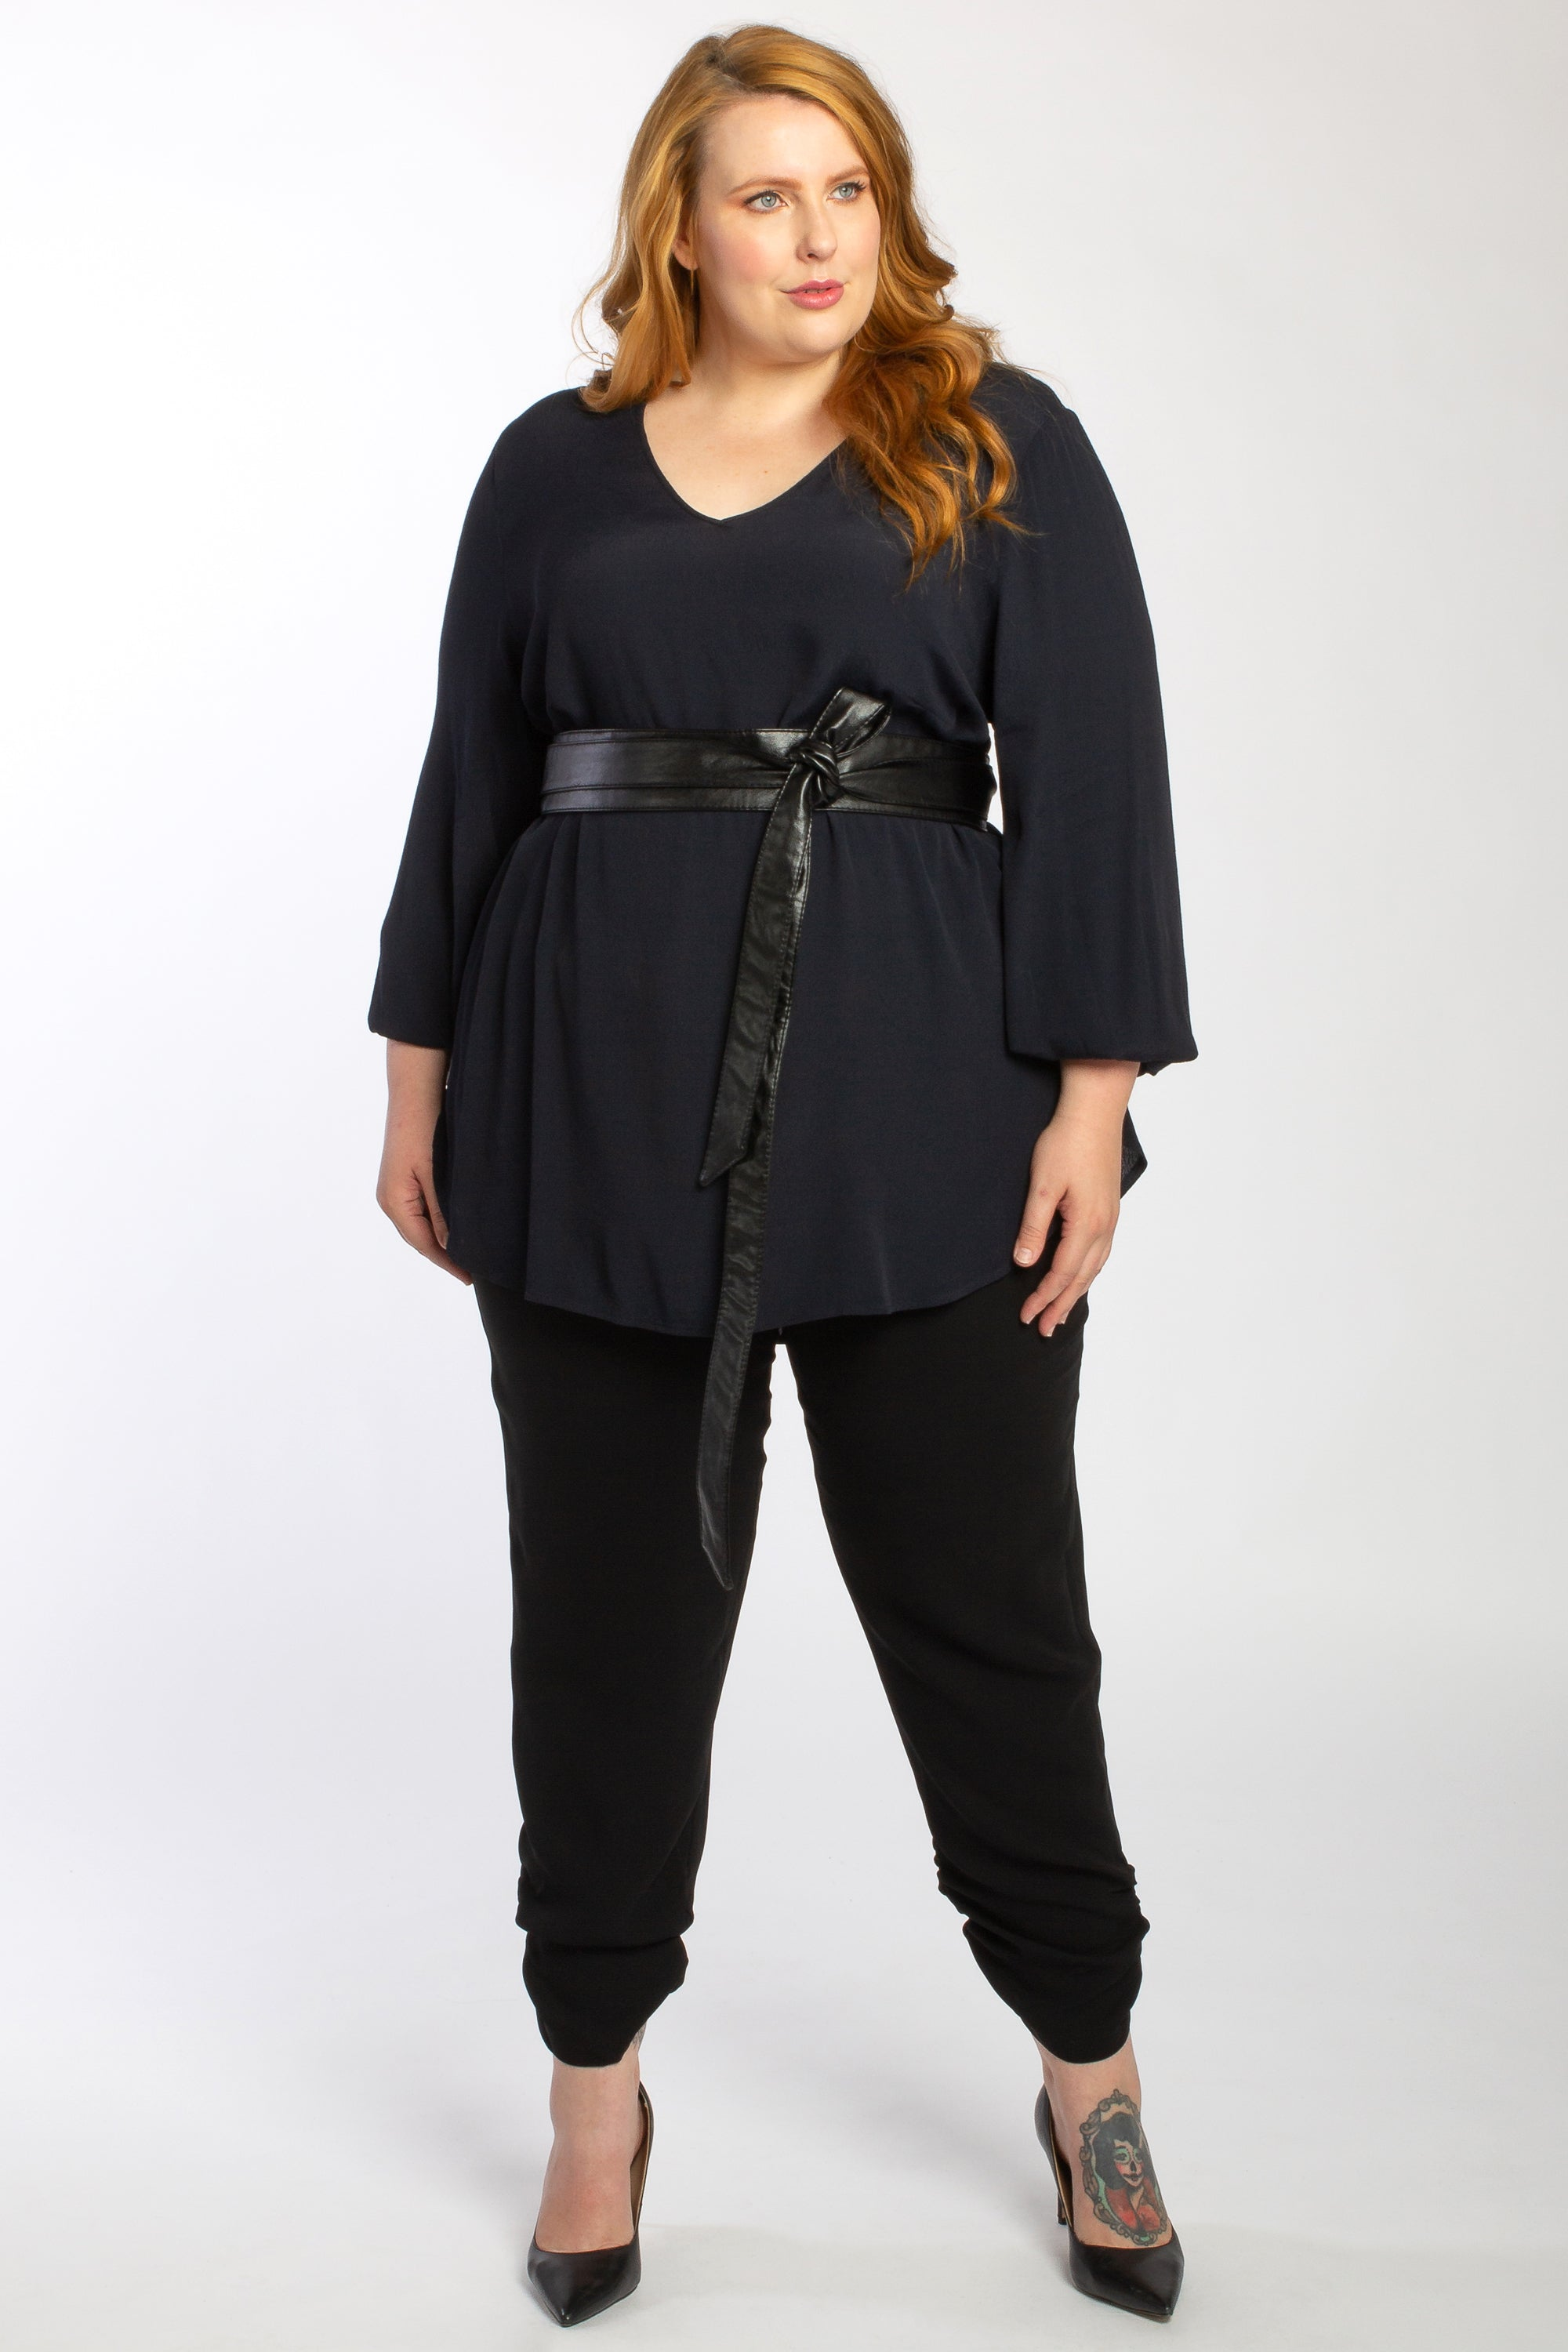 Wrap It Up Obi Belt - Midi - Black Vegan Leather